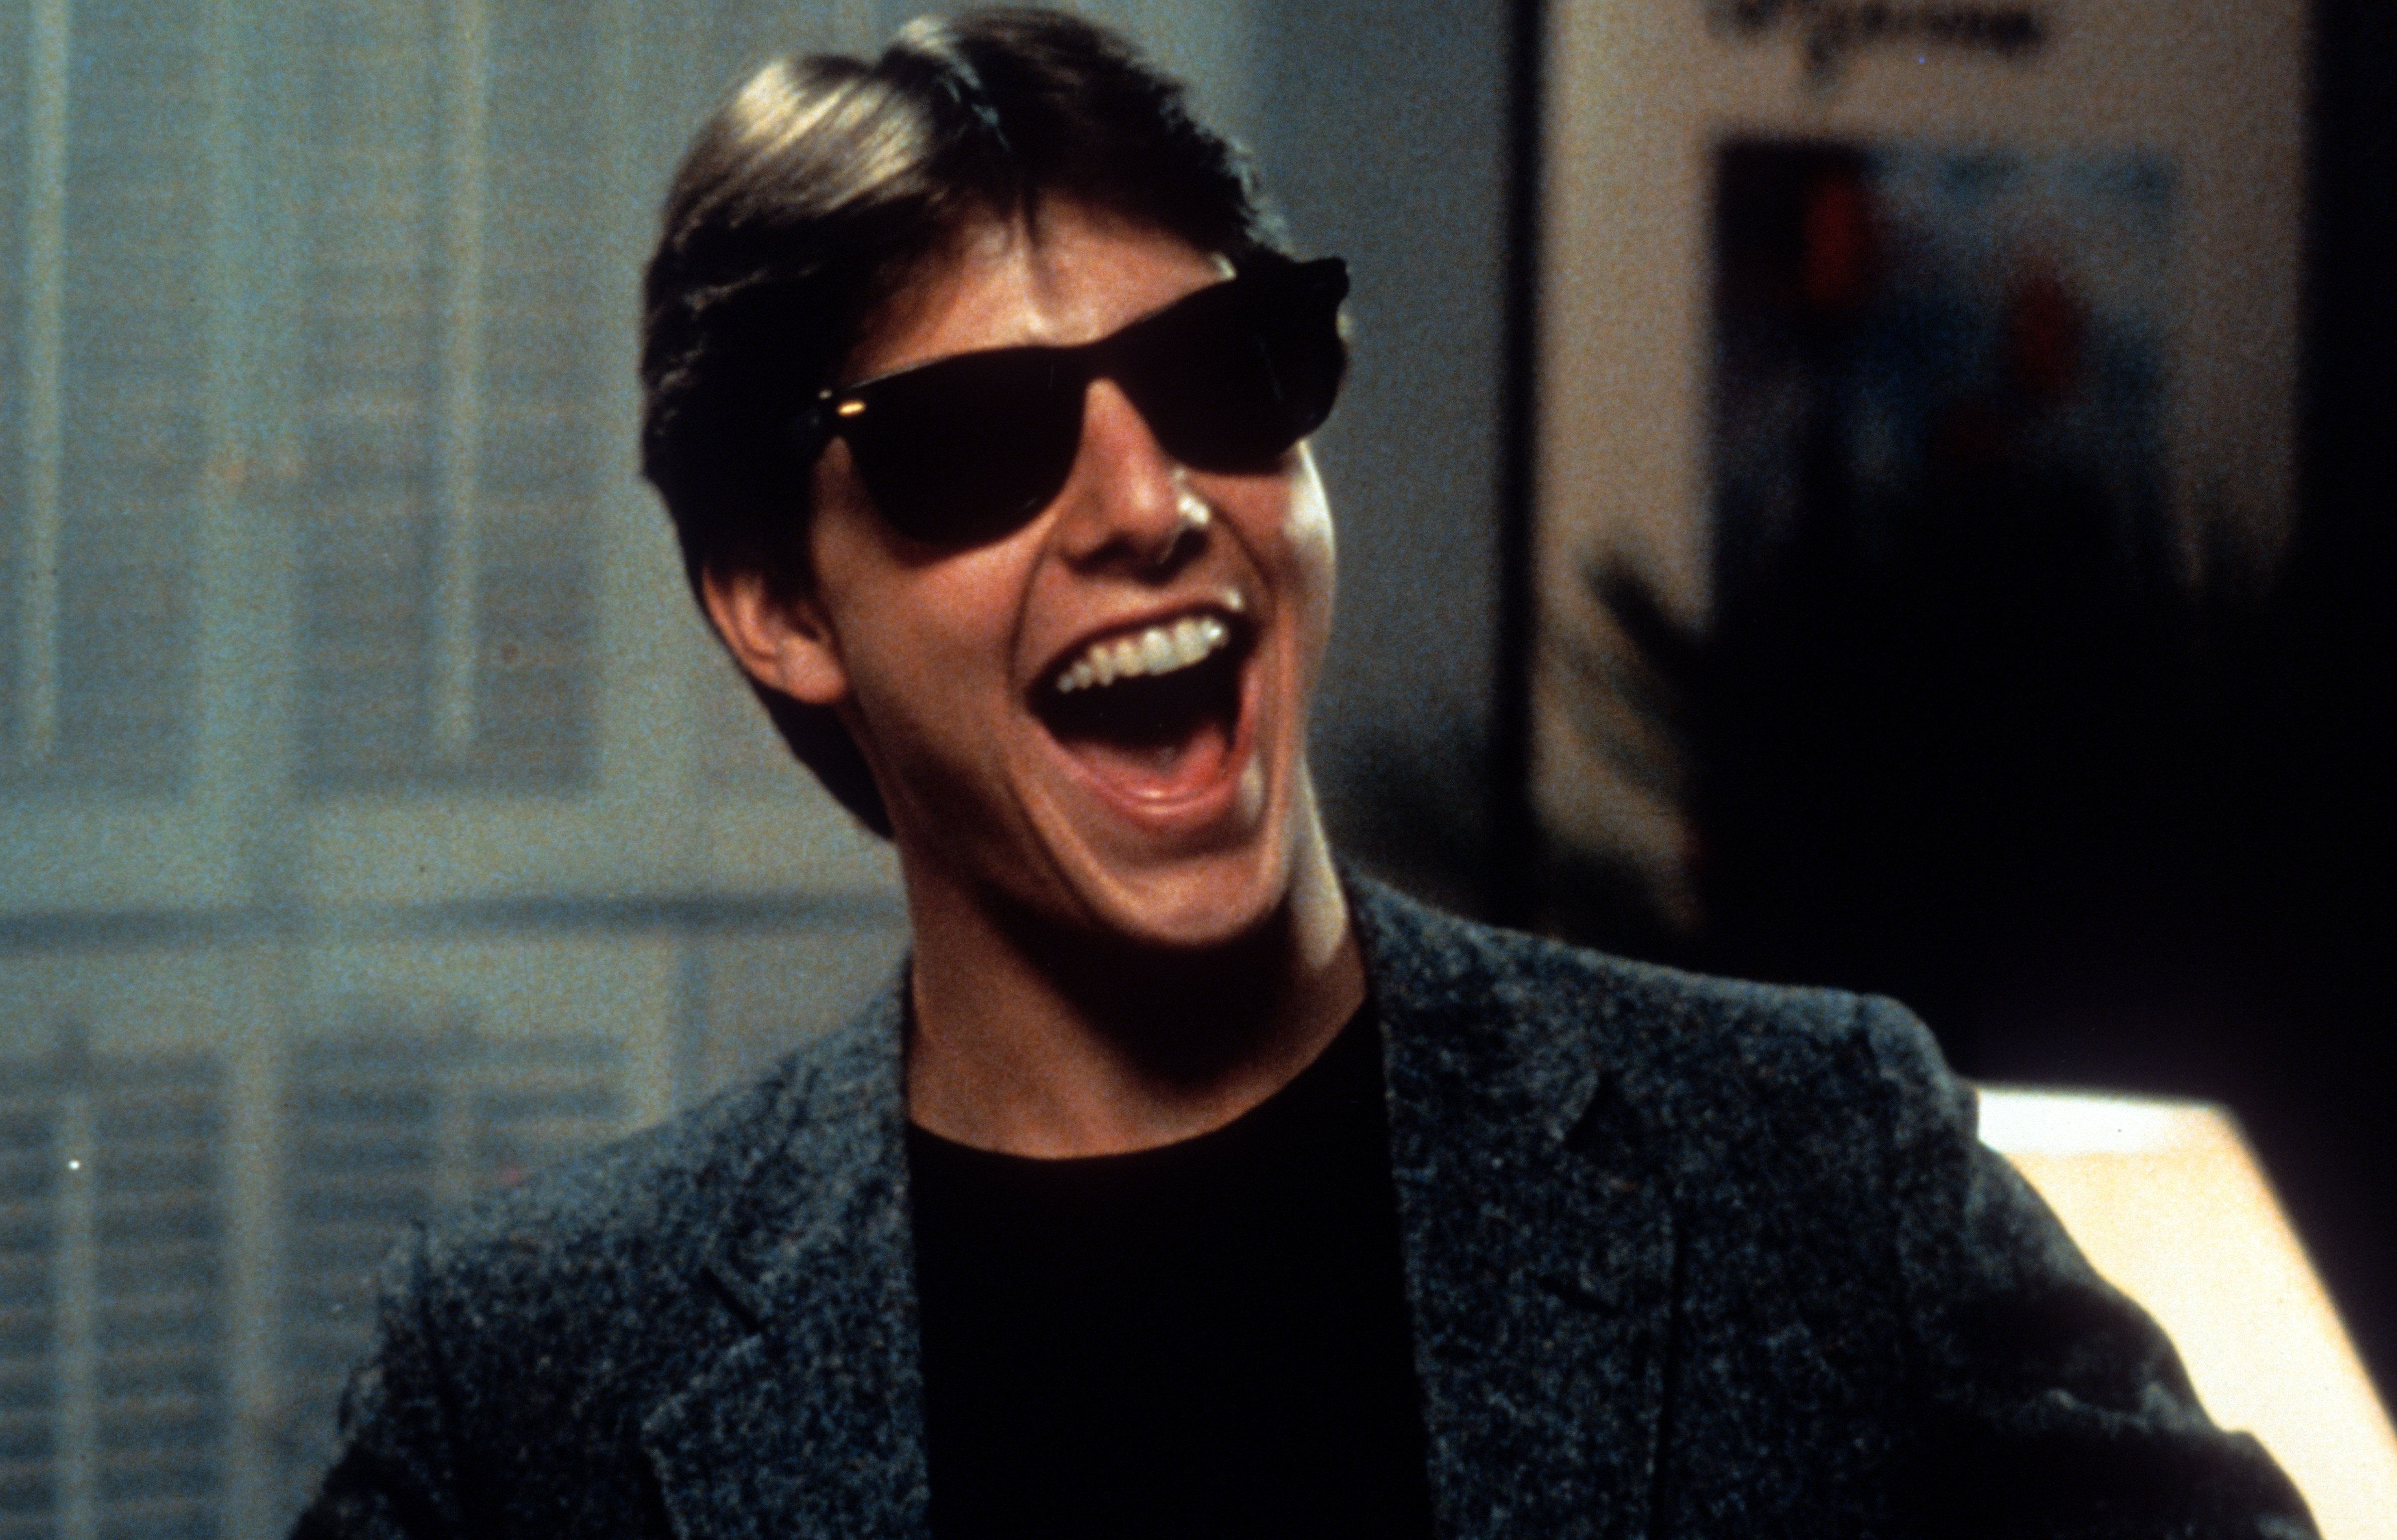 """Tom Cruise laughs in a scene from the film """"Risky Business."""""""